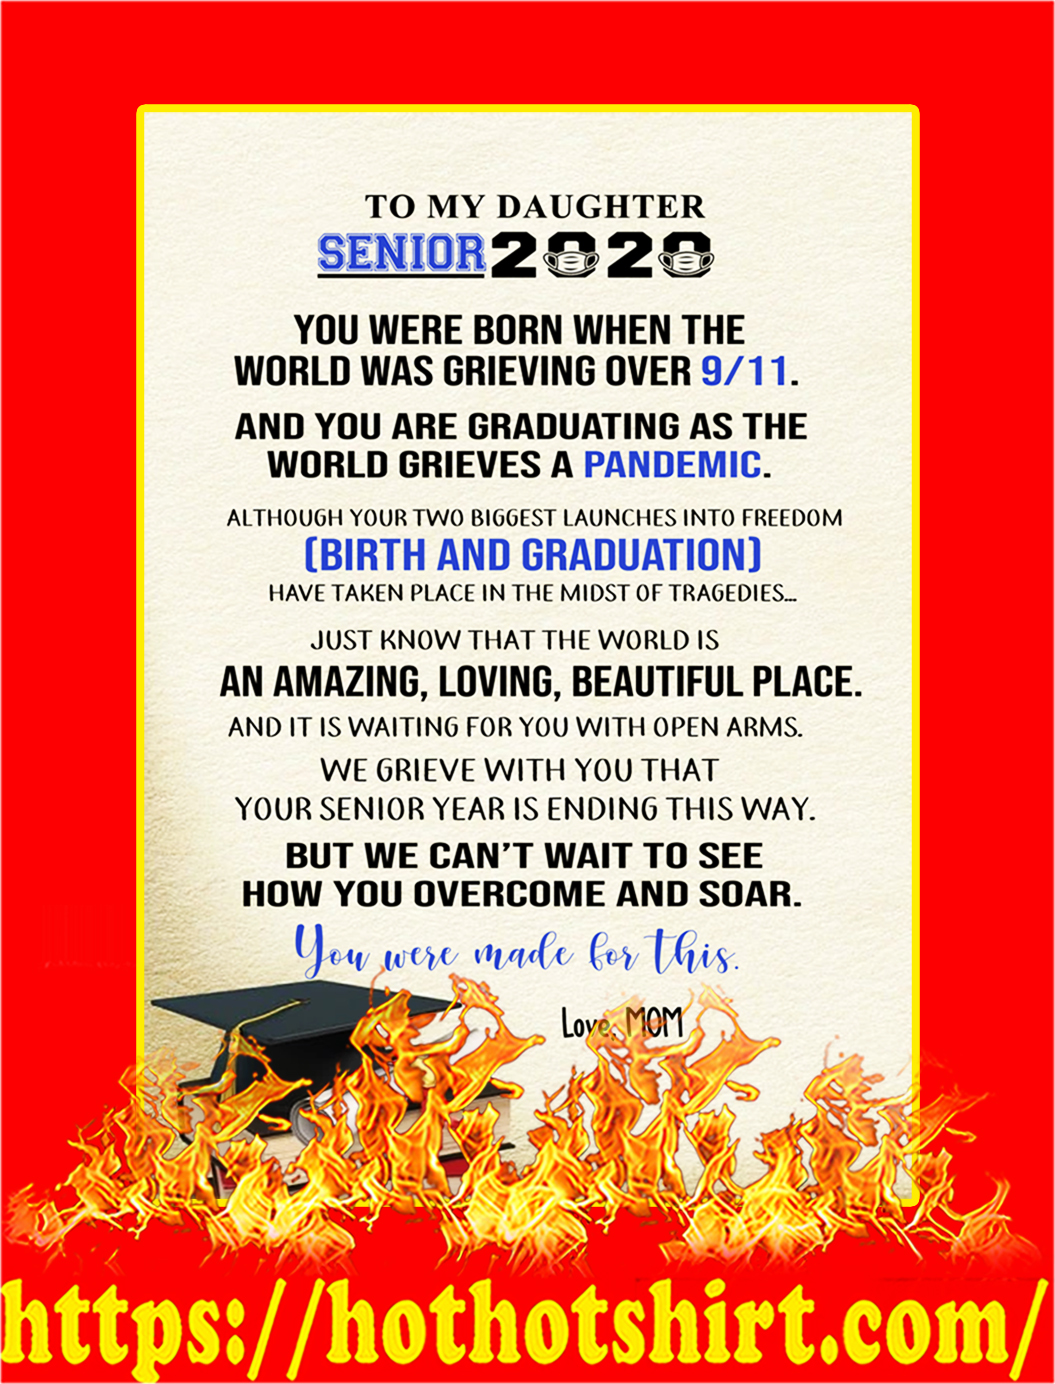 To my daughter senior 2020 mom poster - A1